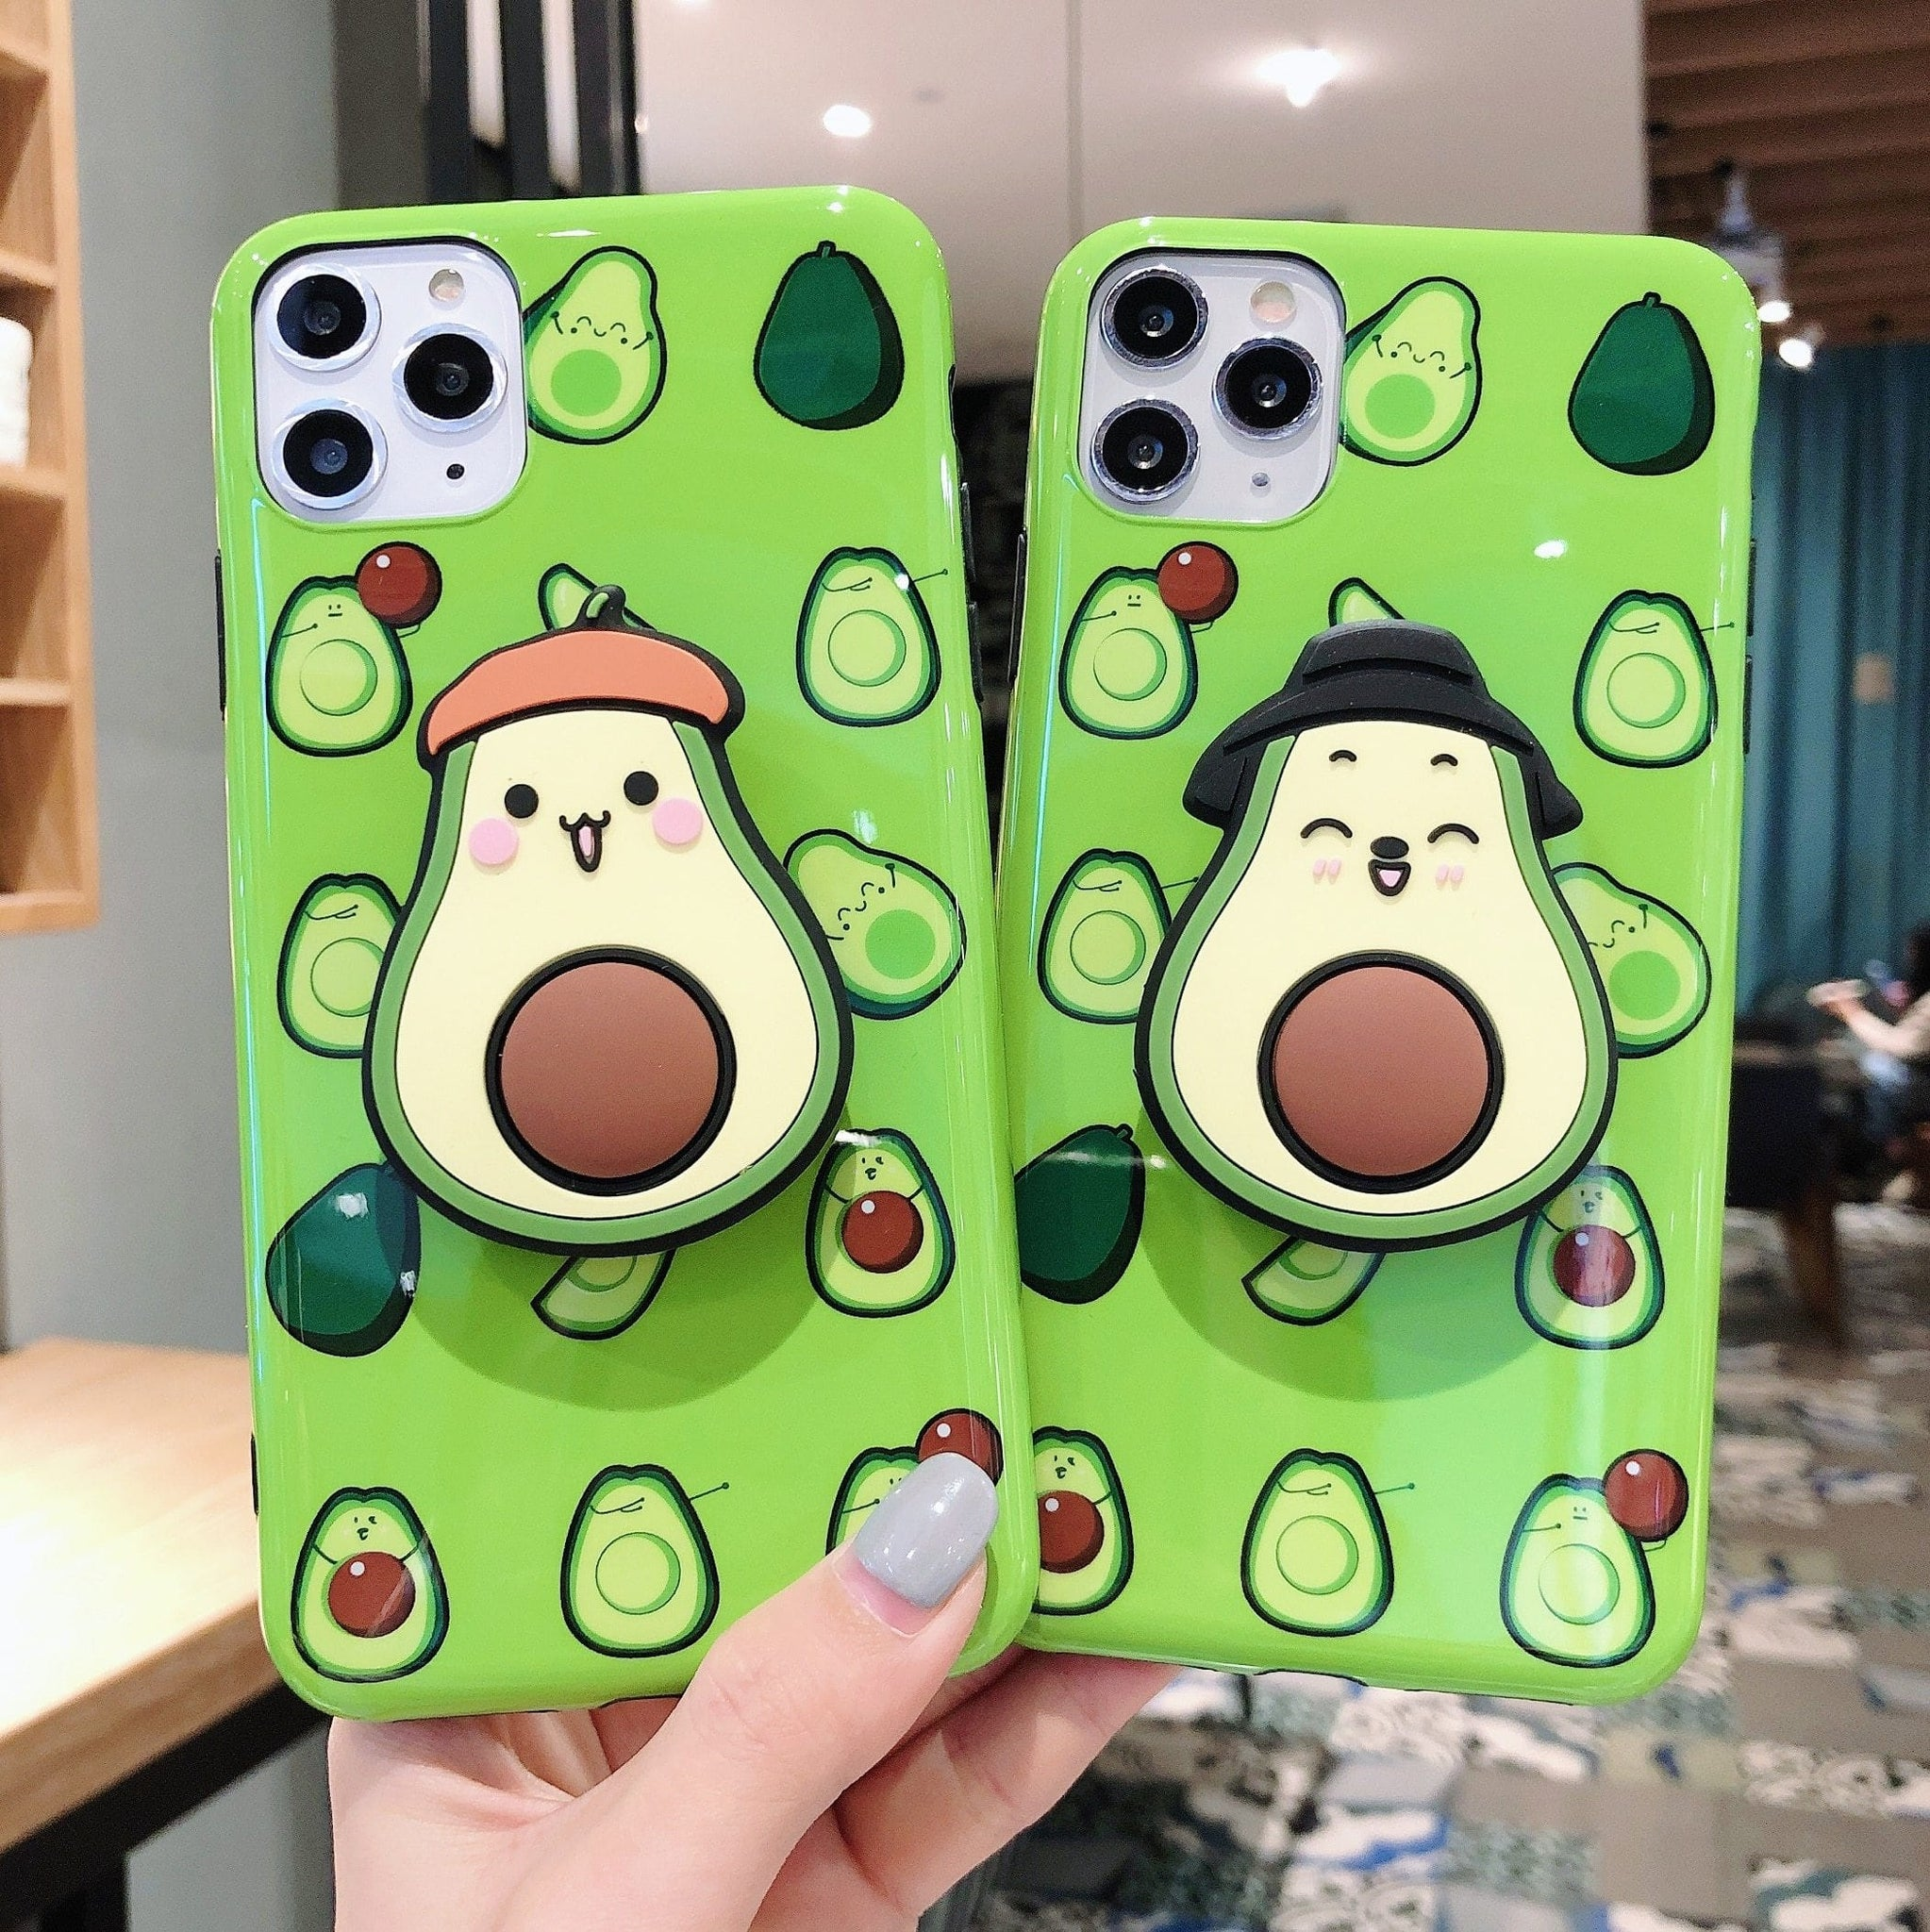 3D Cute Avocado iPhone Case